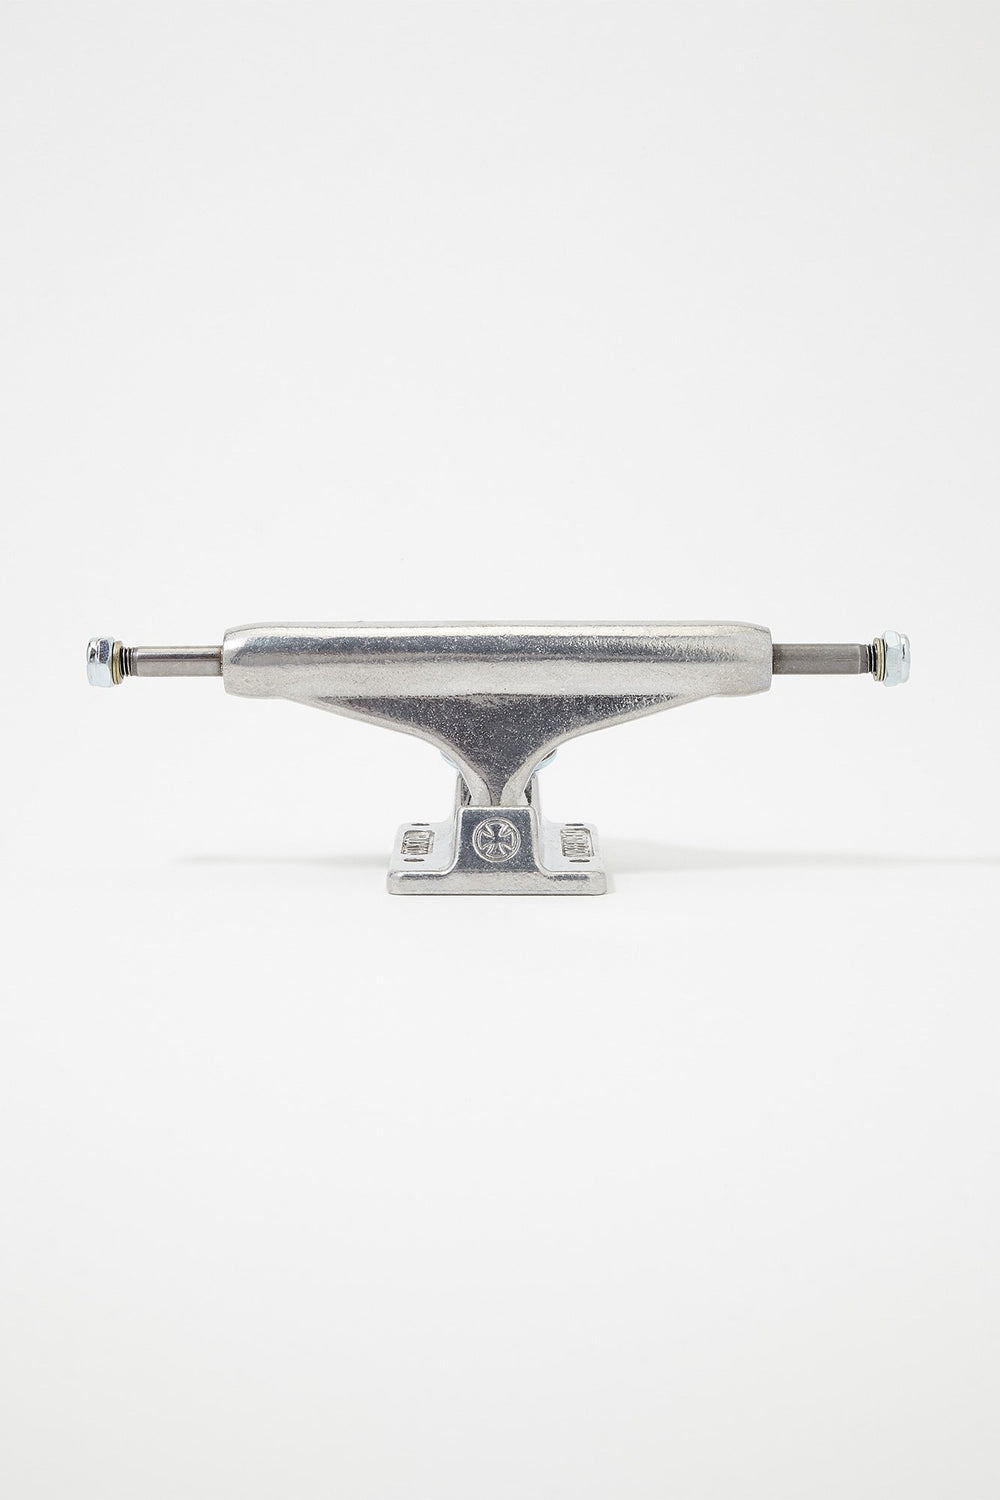 Trucks Independent Stage XI 139mm Argent